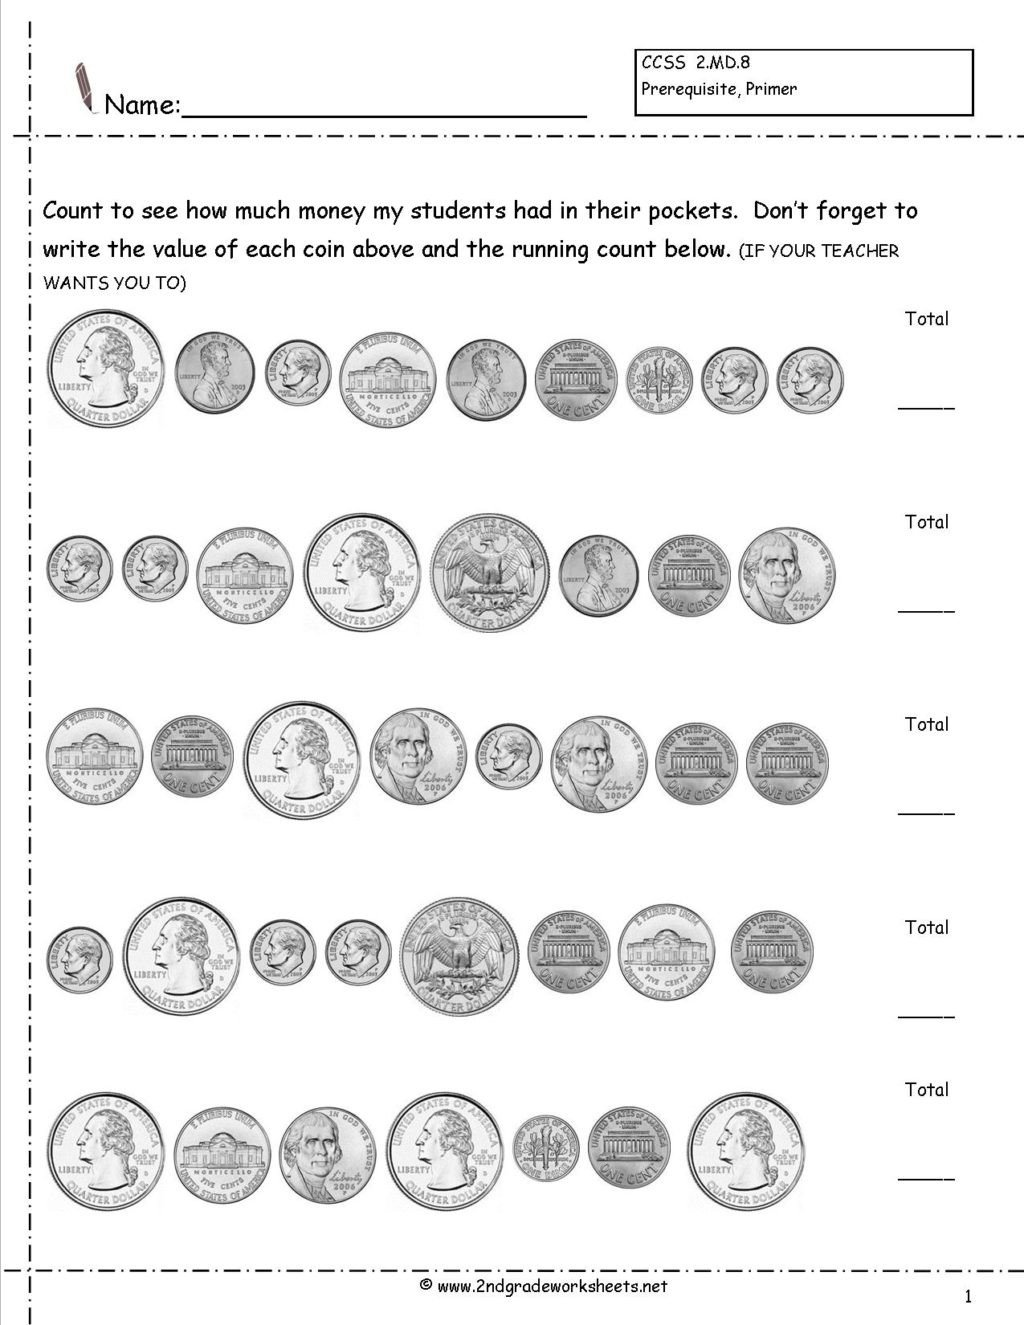 Money Worksheets for Second Grade Worksheet Countingcoinshowmuchmoneyallmixed Marvelous 2nde